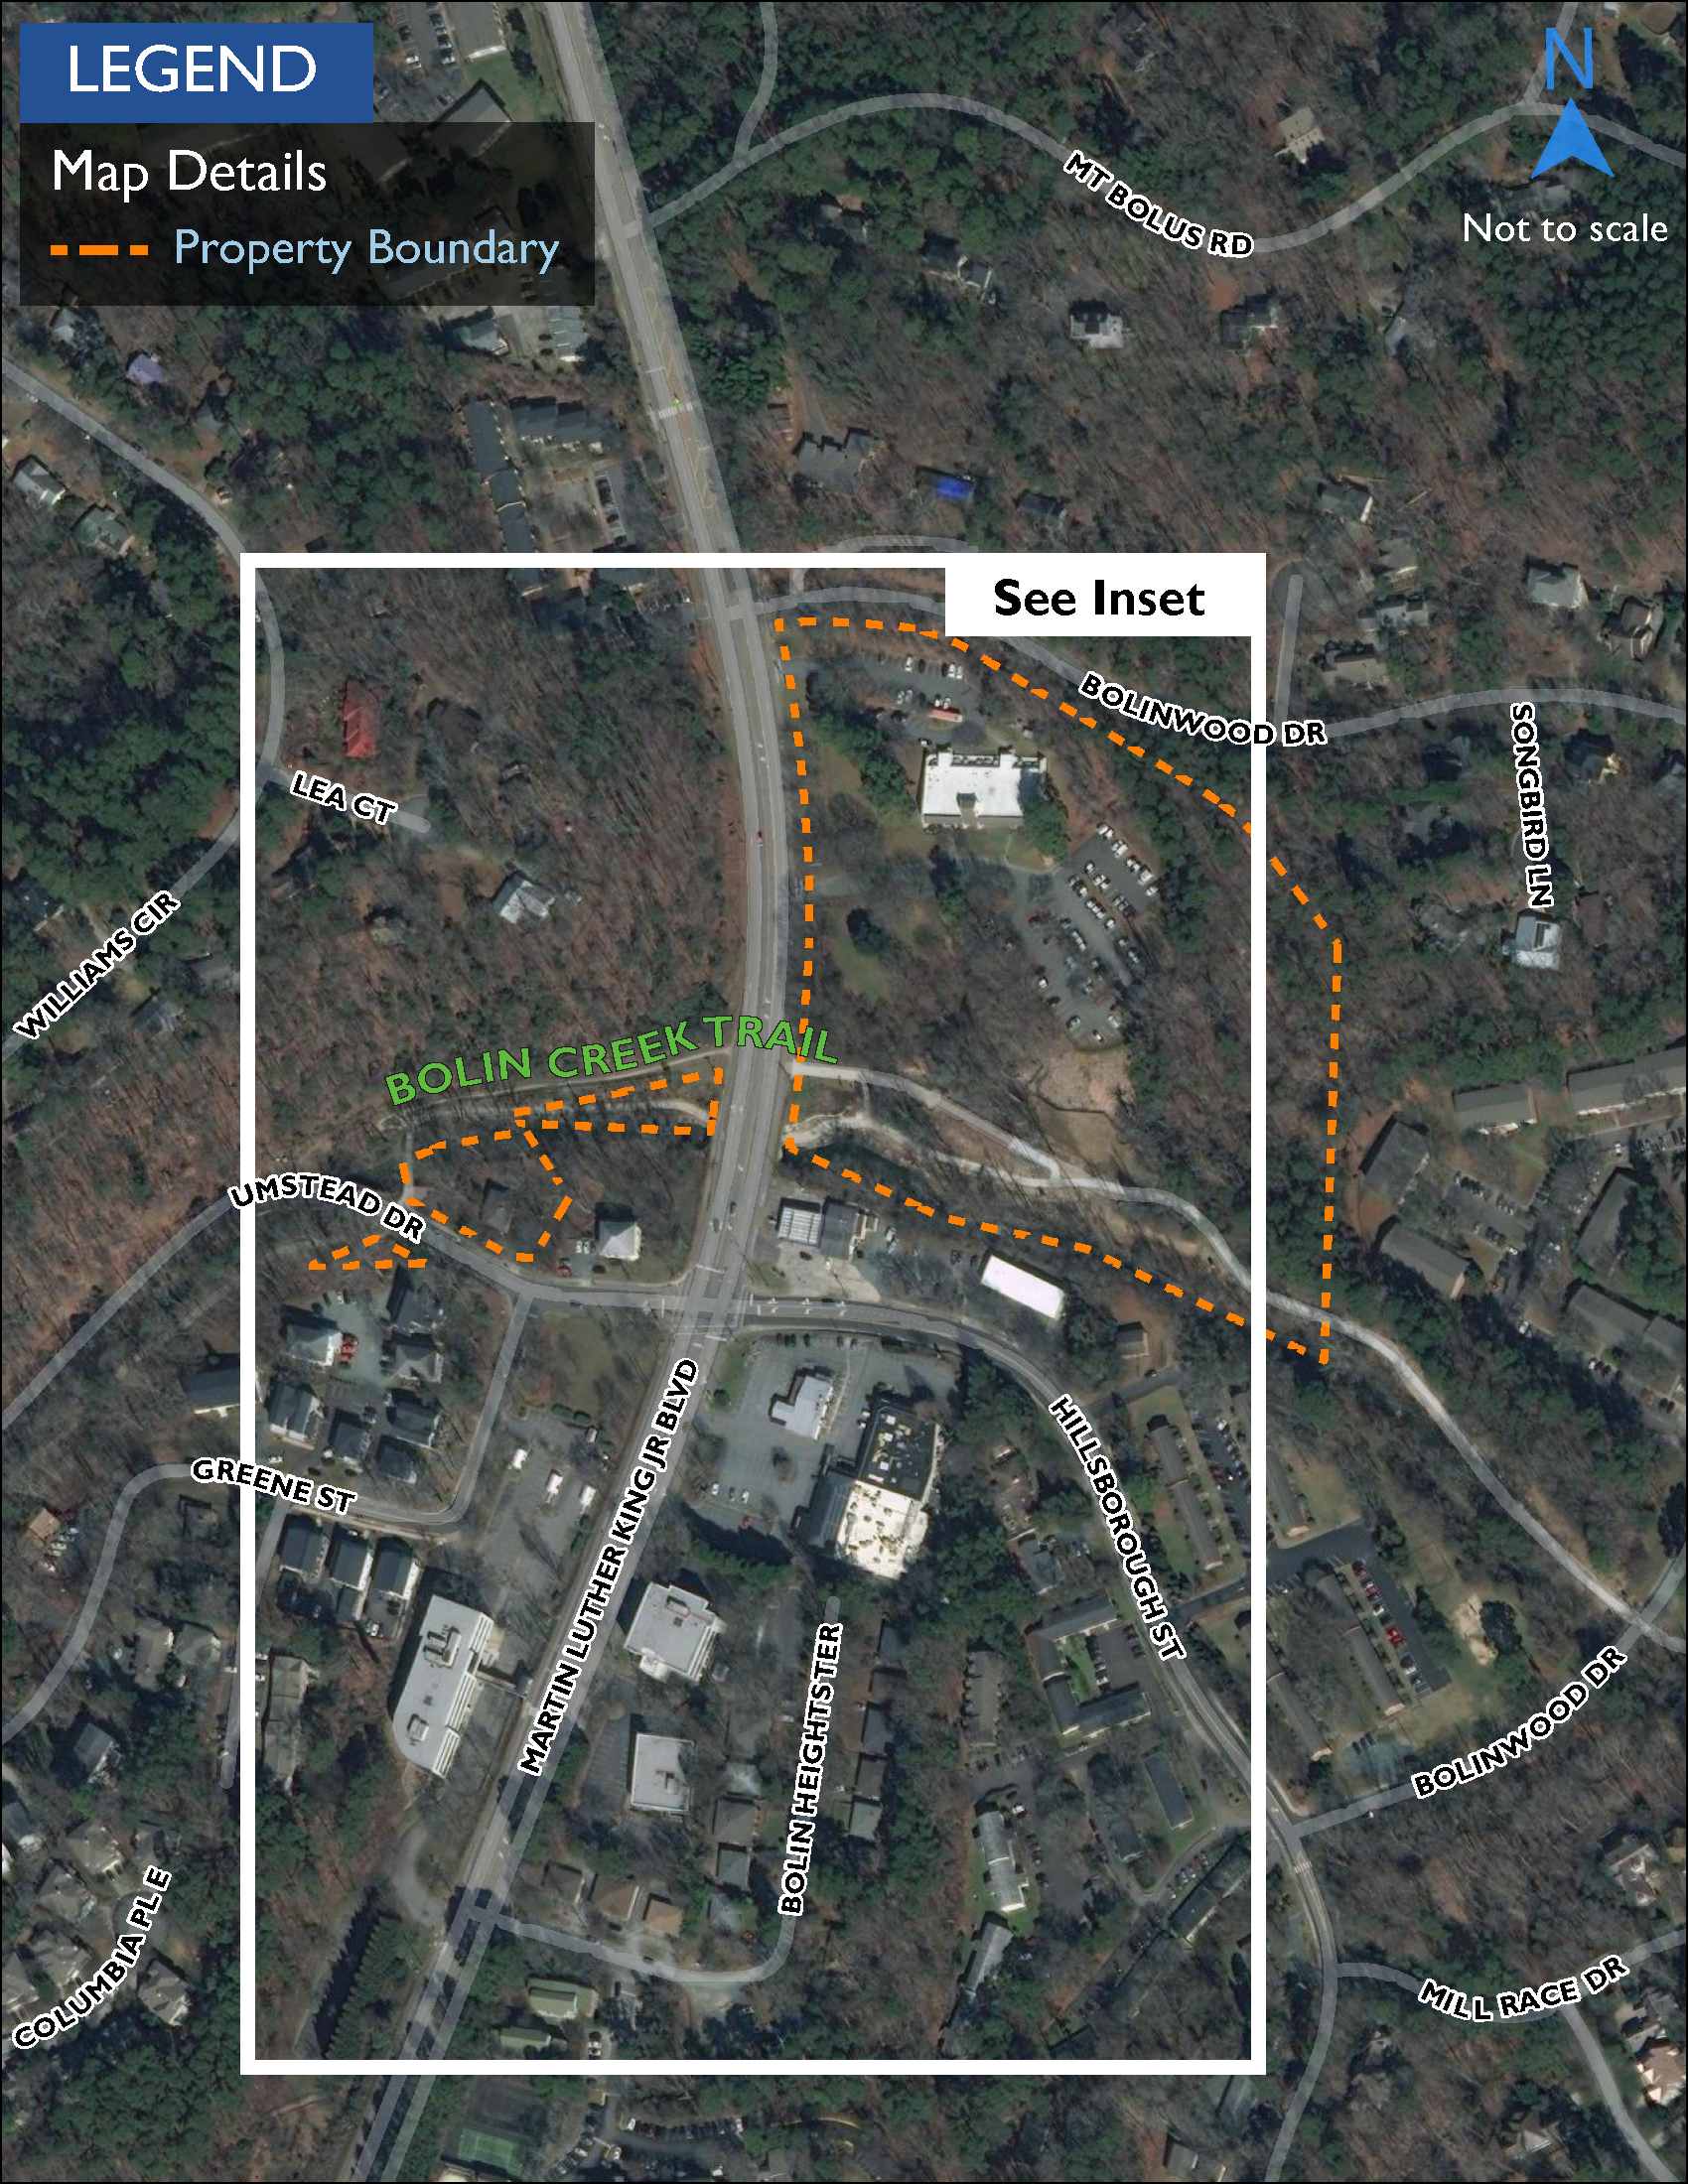 Map showing Bolin Creek Trail, a 1.5-mile shared-use path lined by parkland that connects Community Center Park and Battle Branch Trail.